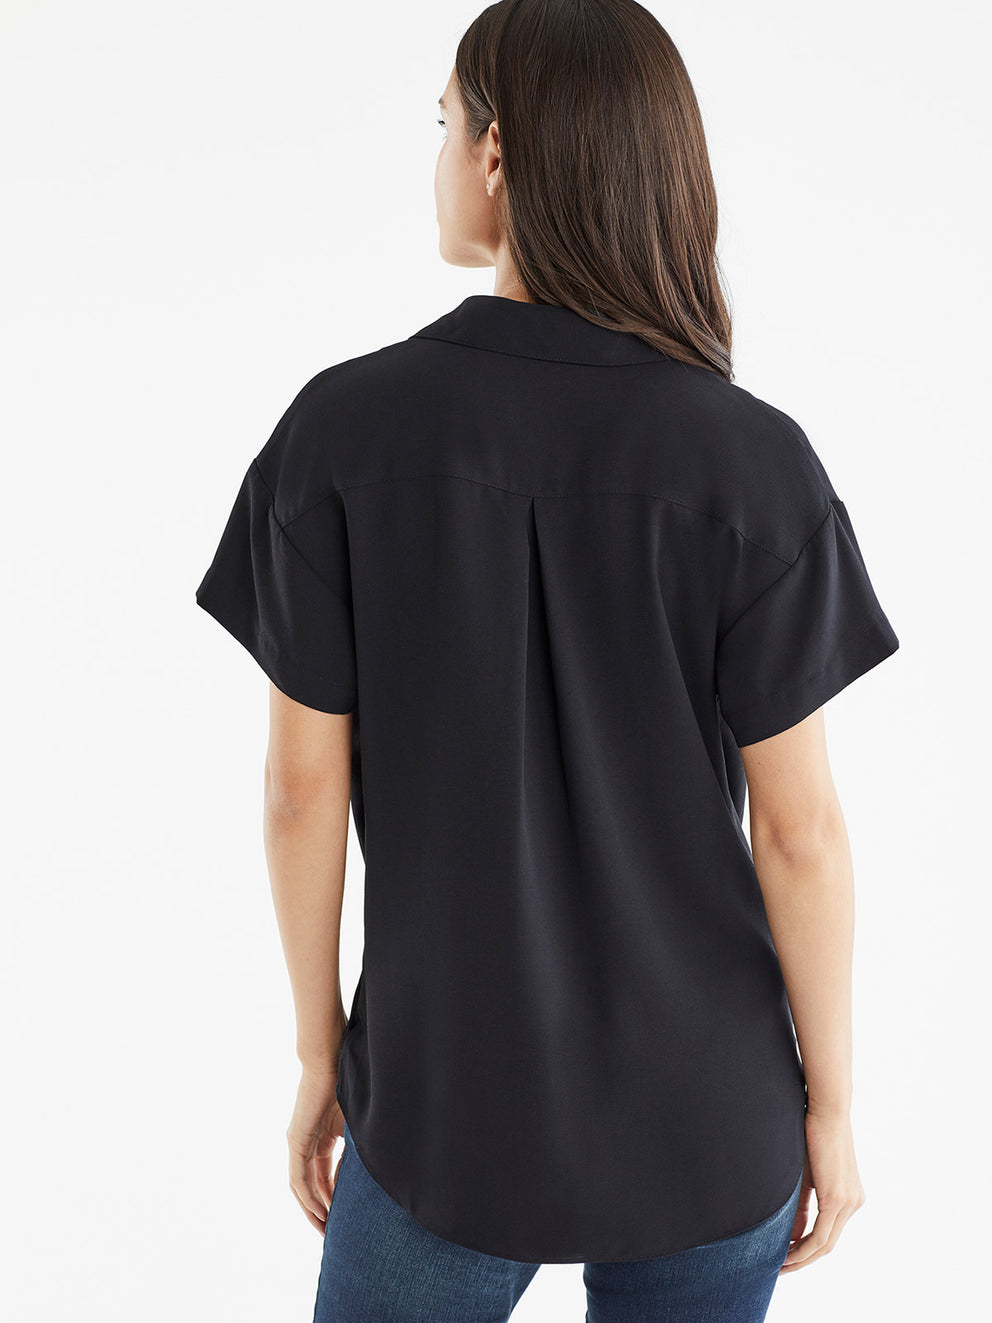 The Jones New York Collared Crossover Top in color Black - Image Position 3